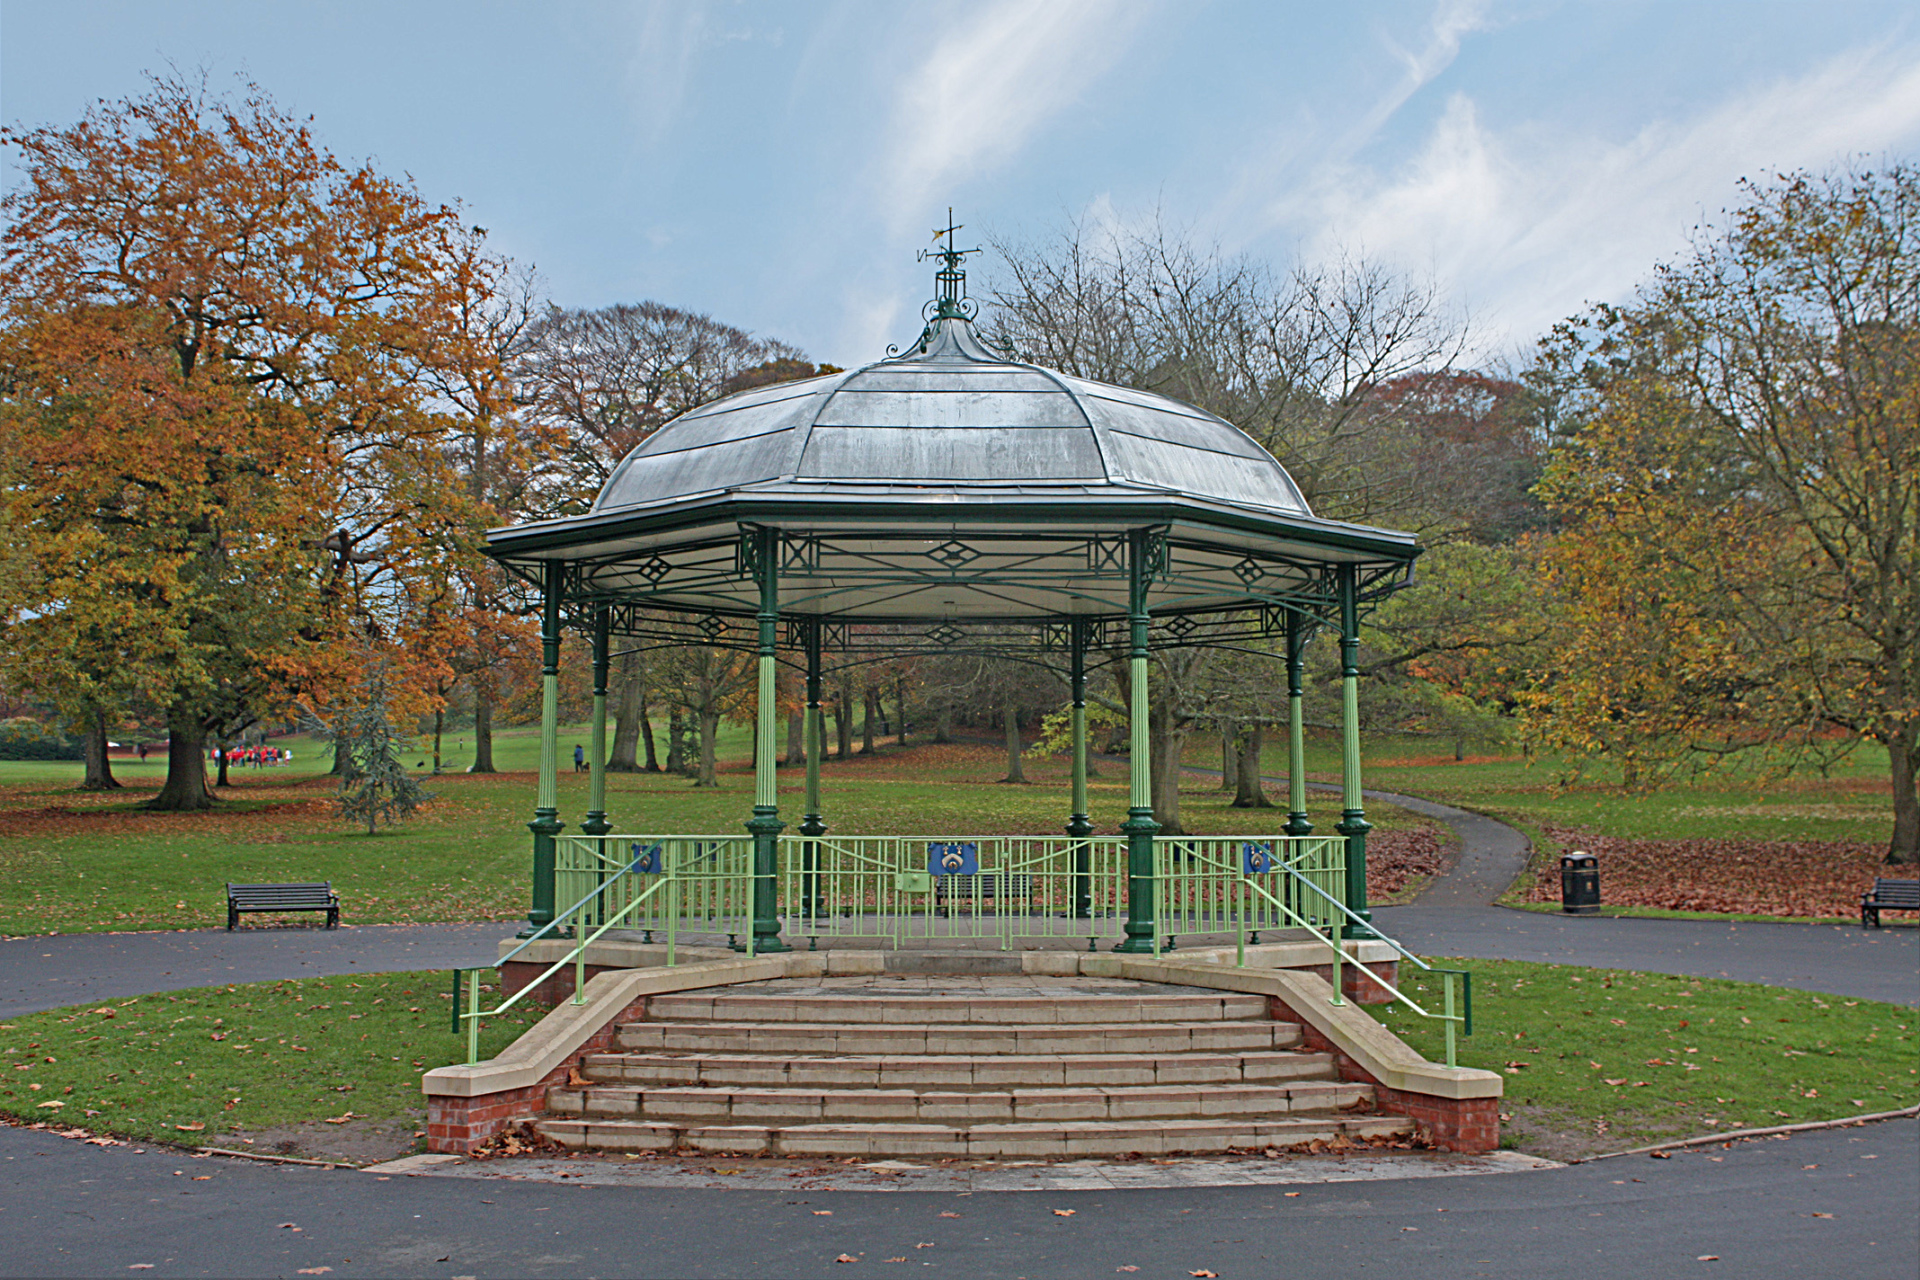 Mary Stevens Park (Stourbridge) by Conservation architects Baart Harries Newall (BHN architects) based in Shrewsbury.